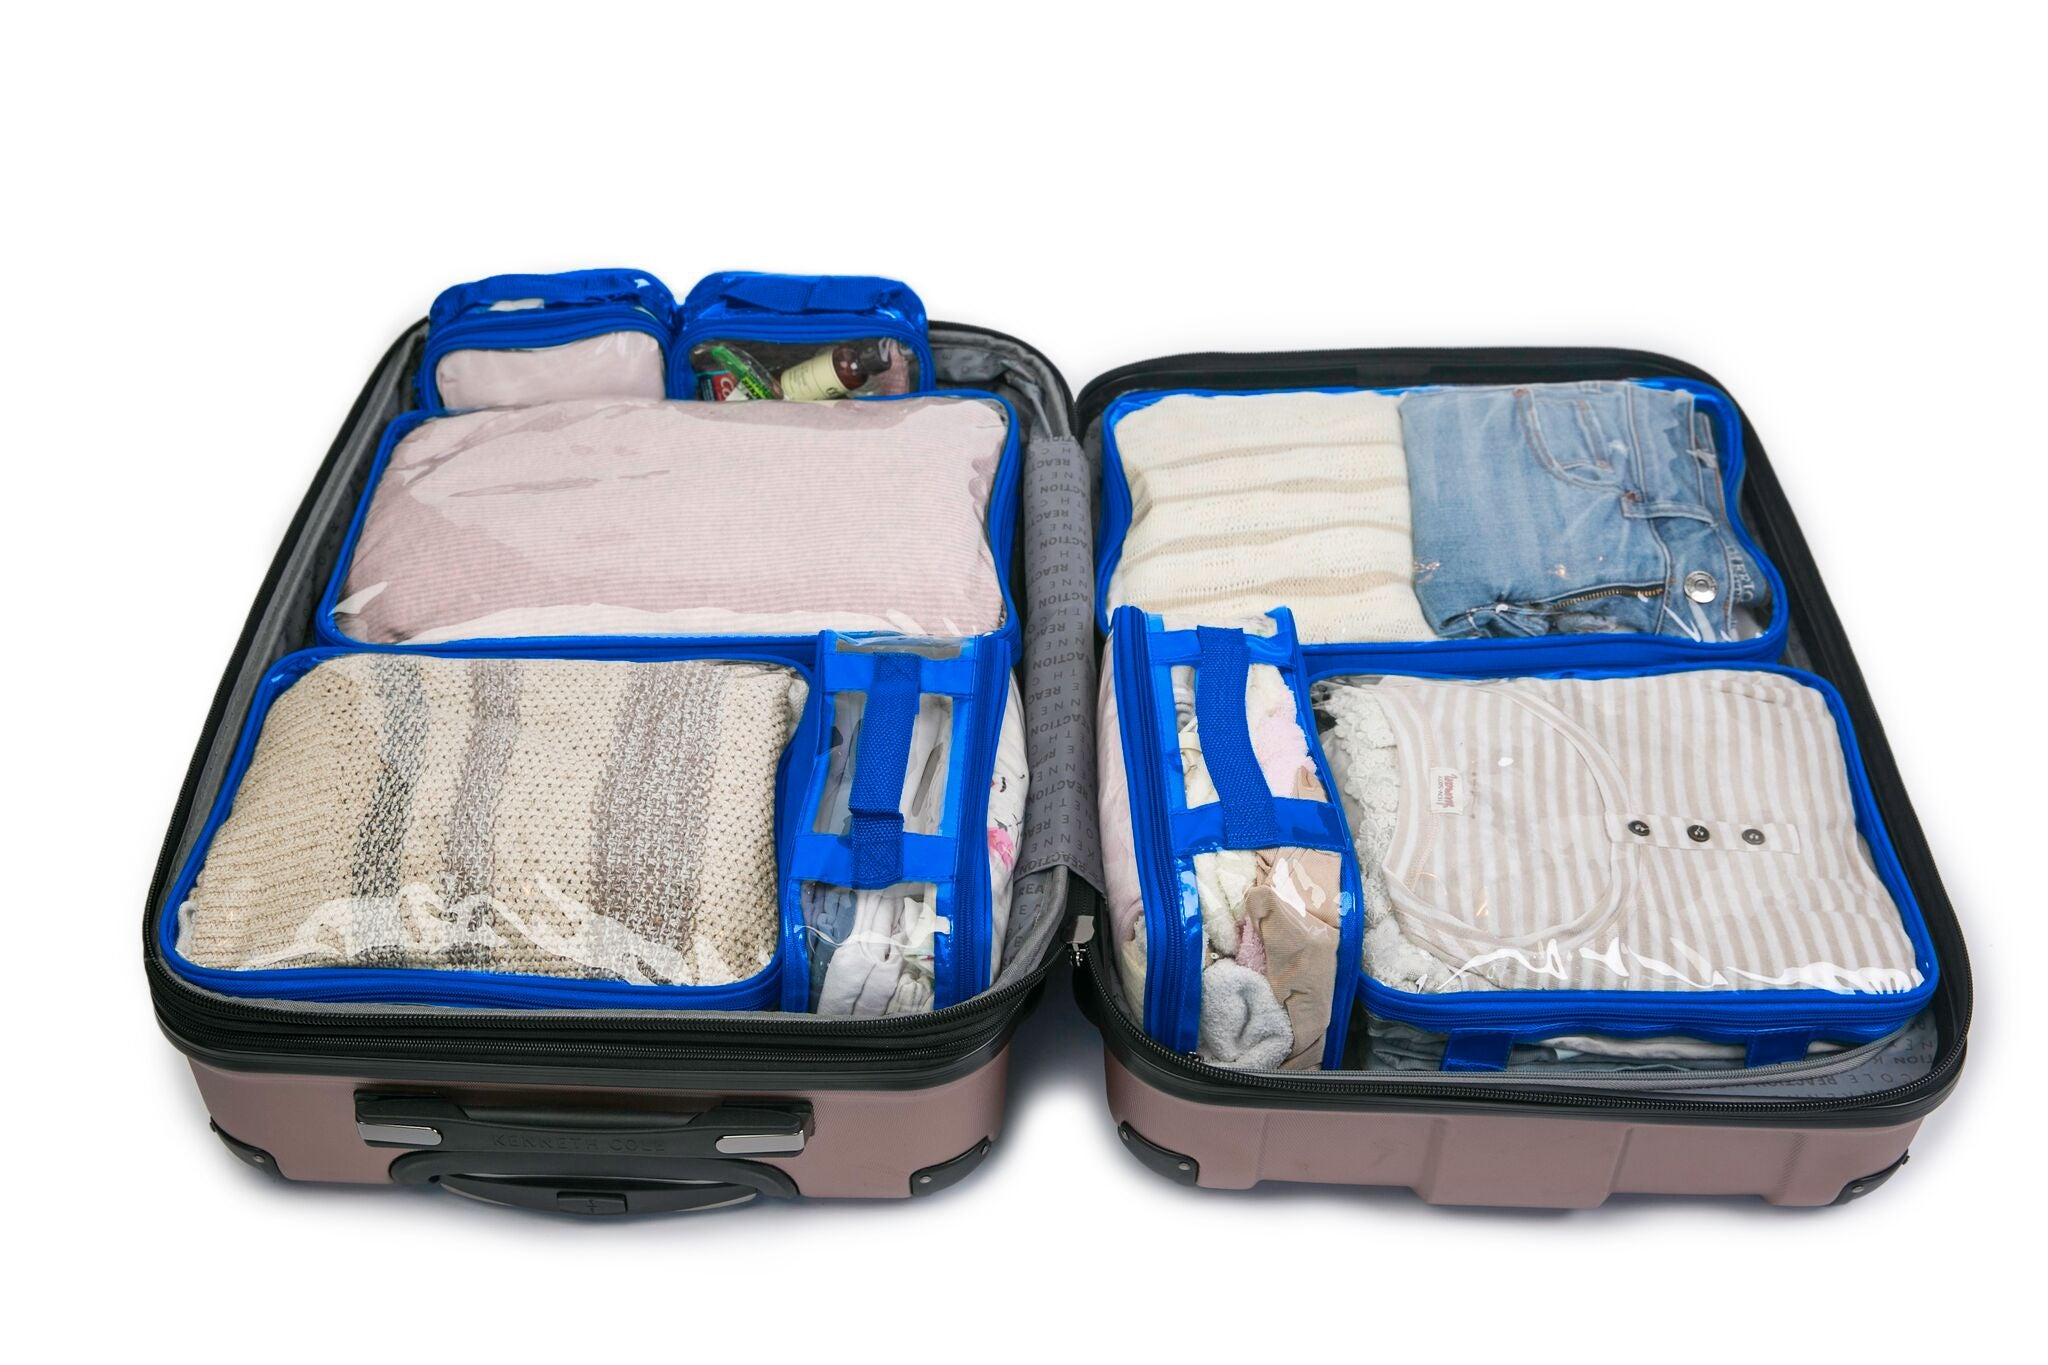 Royal blue packing cubes inside pink suitcase